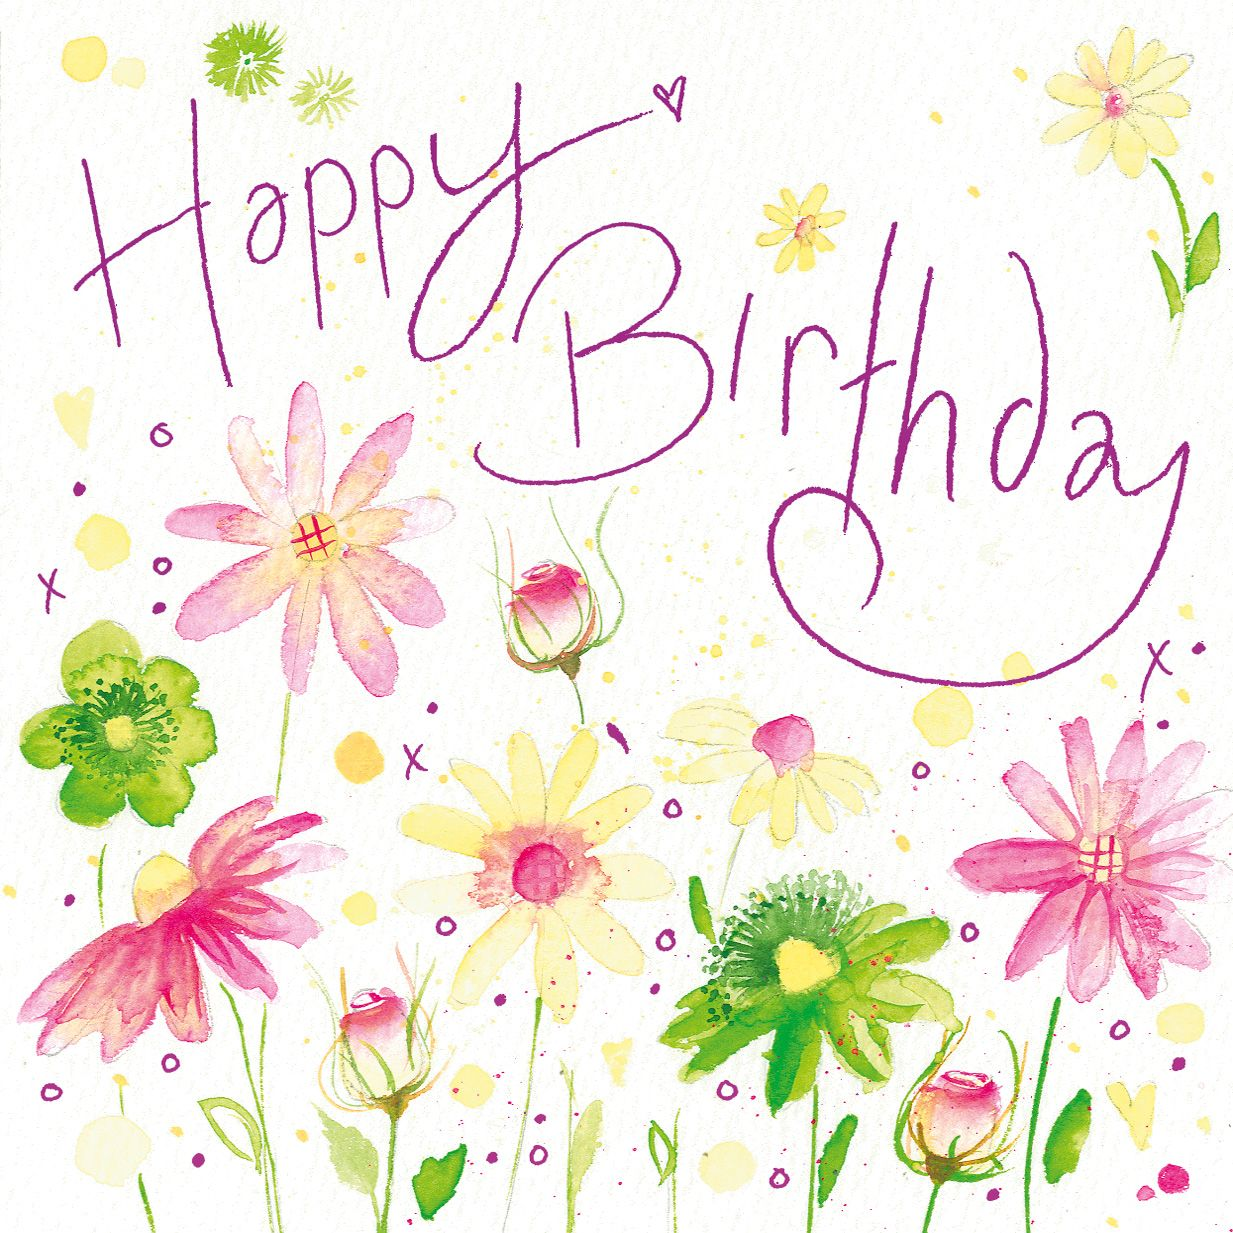 floral happy birthday images ; 1eb0298d34f84ac2529e2f239851410c